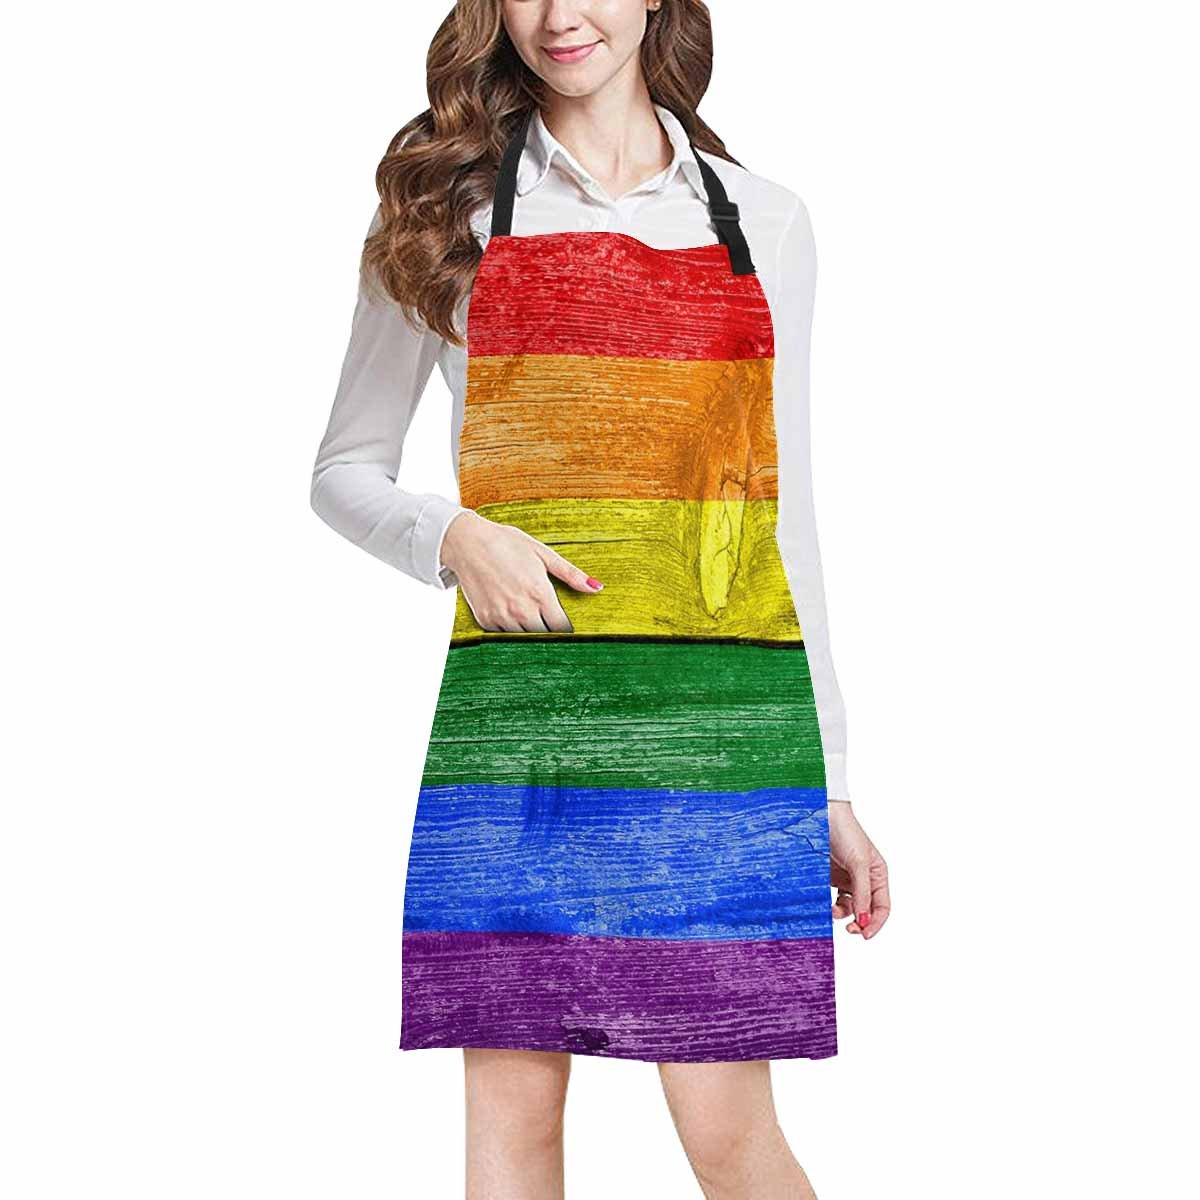 InterestPrint Funny Vintage Rainbow Wood Adjustable Bib Apron with Pockets - Commercial Restaurant and Home Kitchen Adjustable Apron, Plus Size